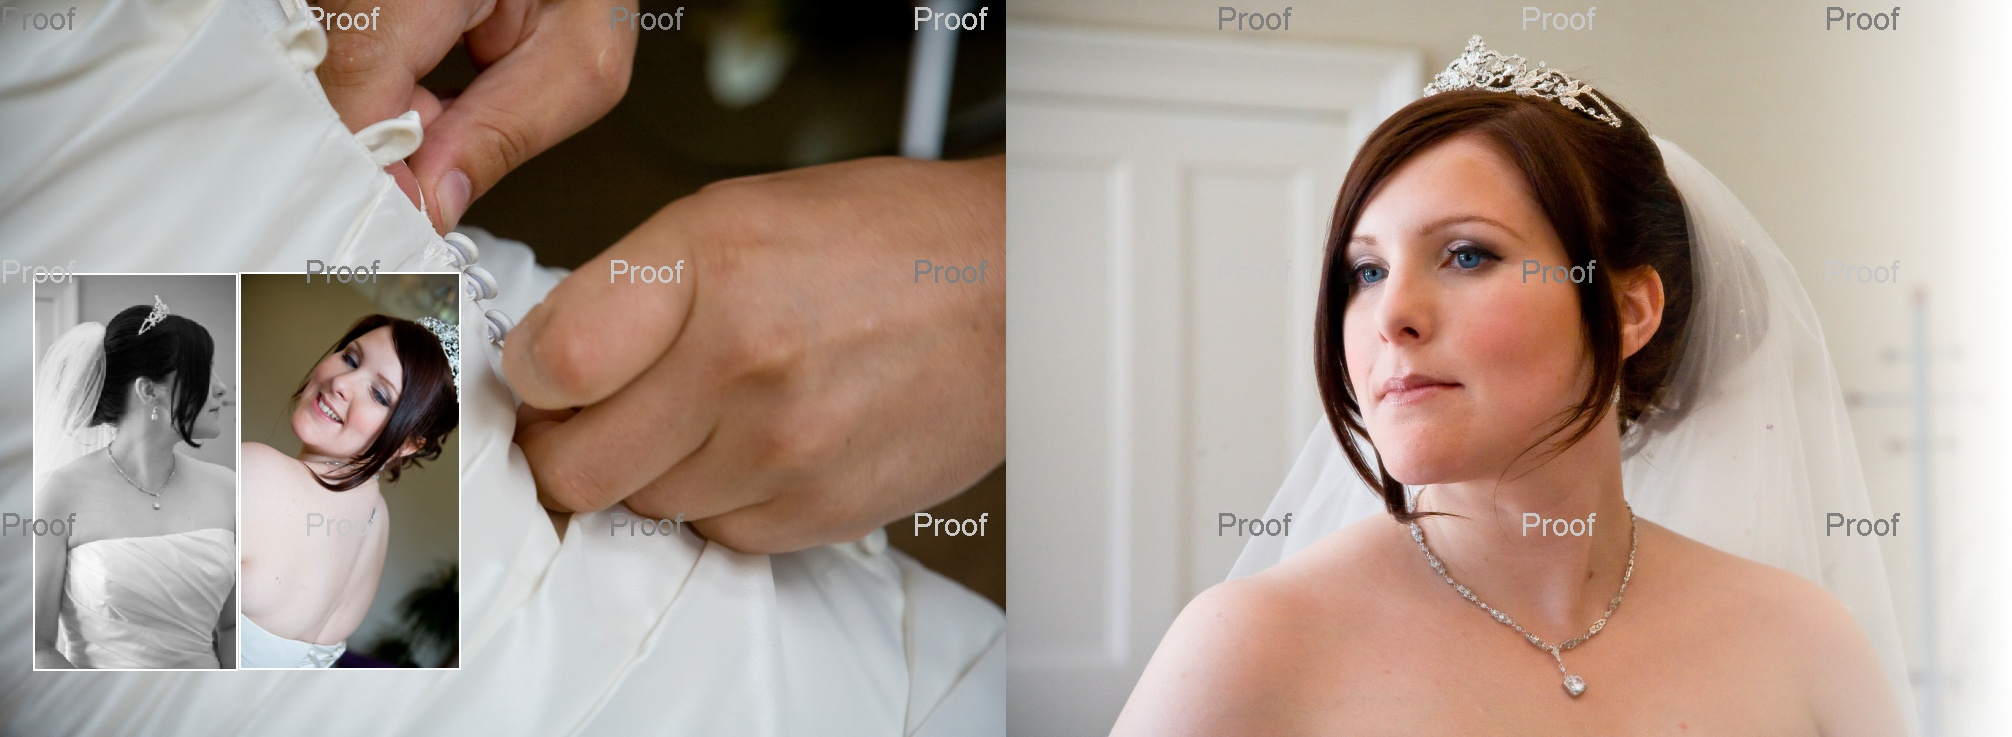 pages 6-7 of wedding storybook album with bride in final stages of putting on her wedding dress